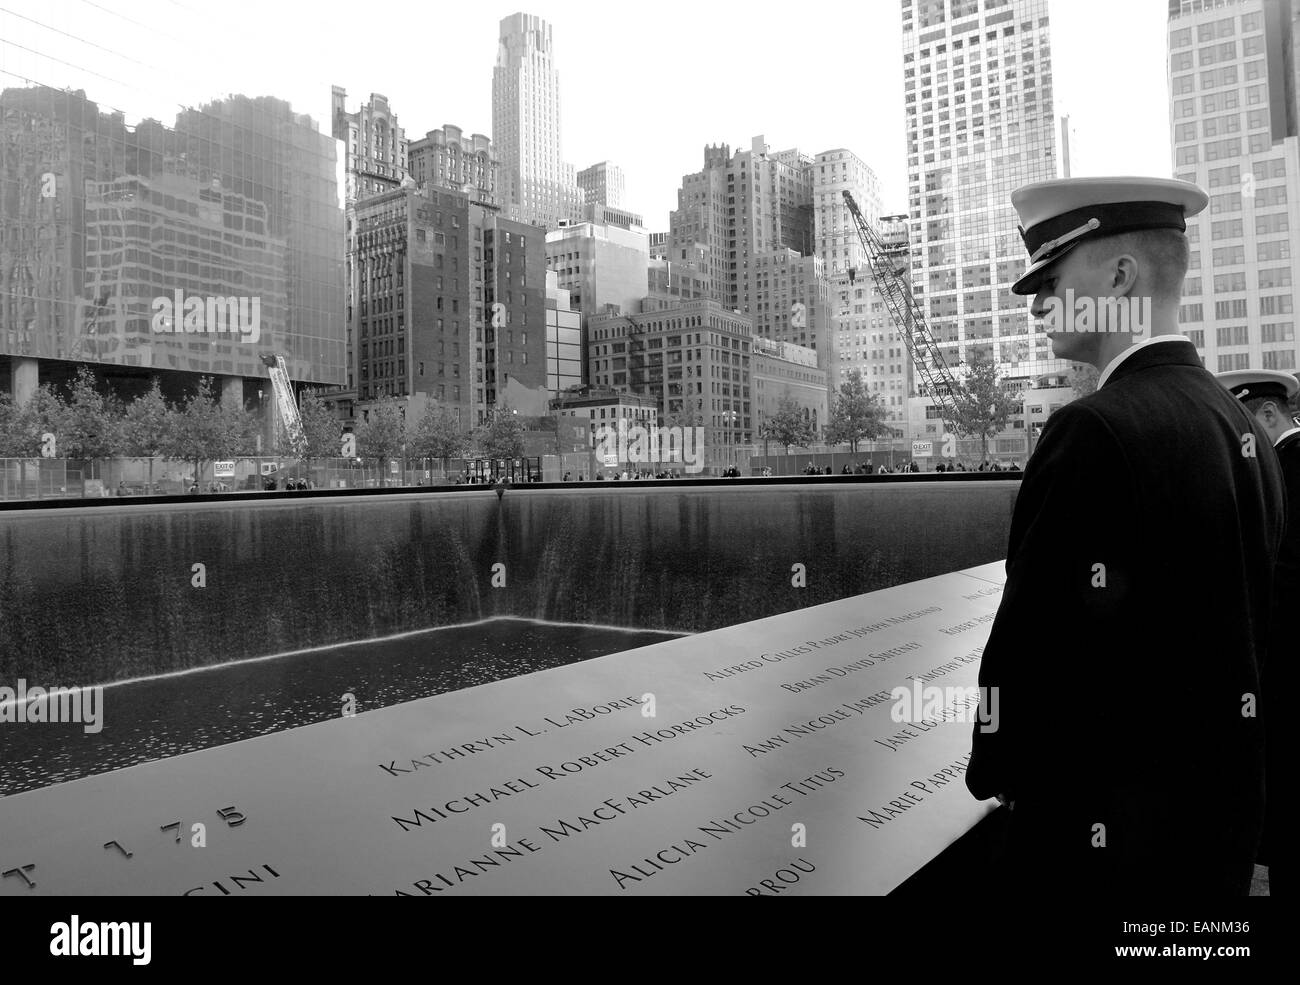 A serviceman pauses at the Ground Zero memorial to remember those killed in the 9/11 terrorist attacks. NYC. 19/11/2011 - Stock Image